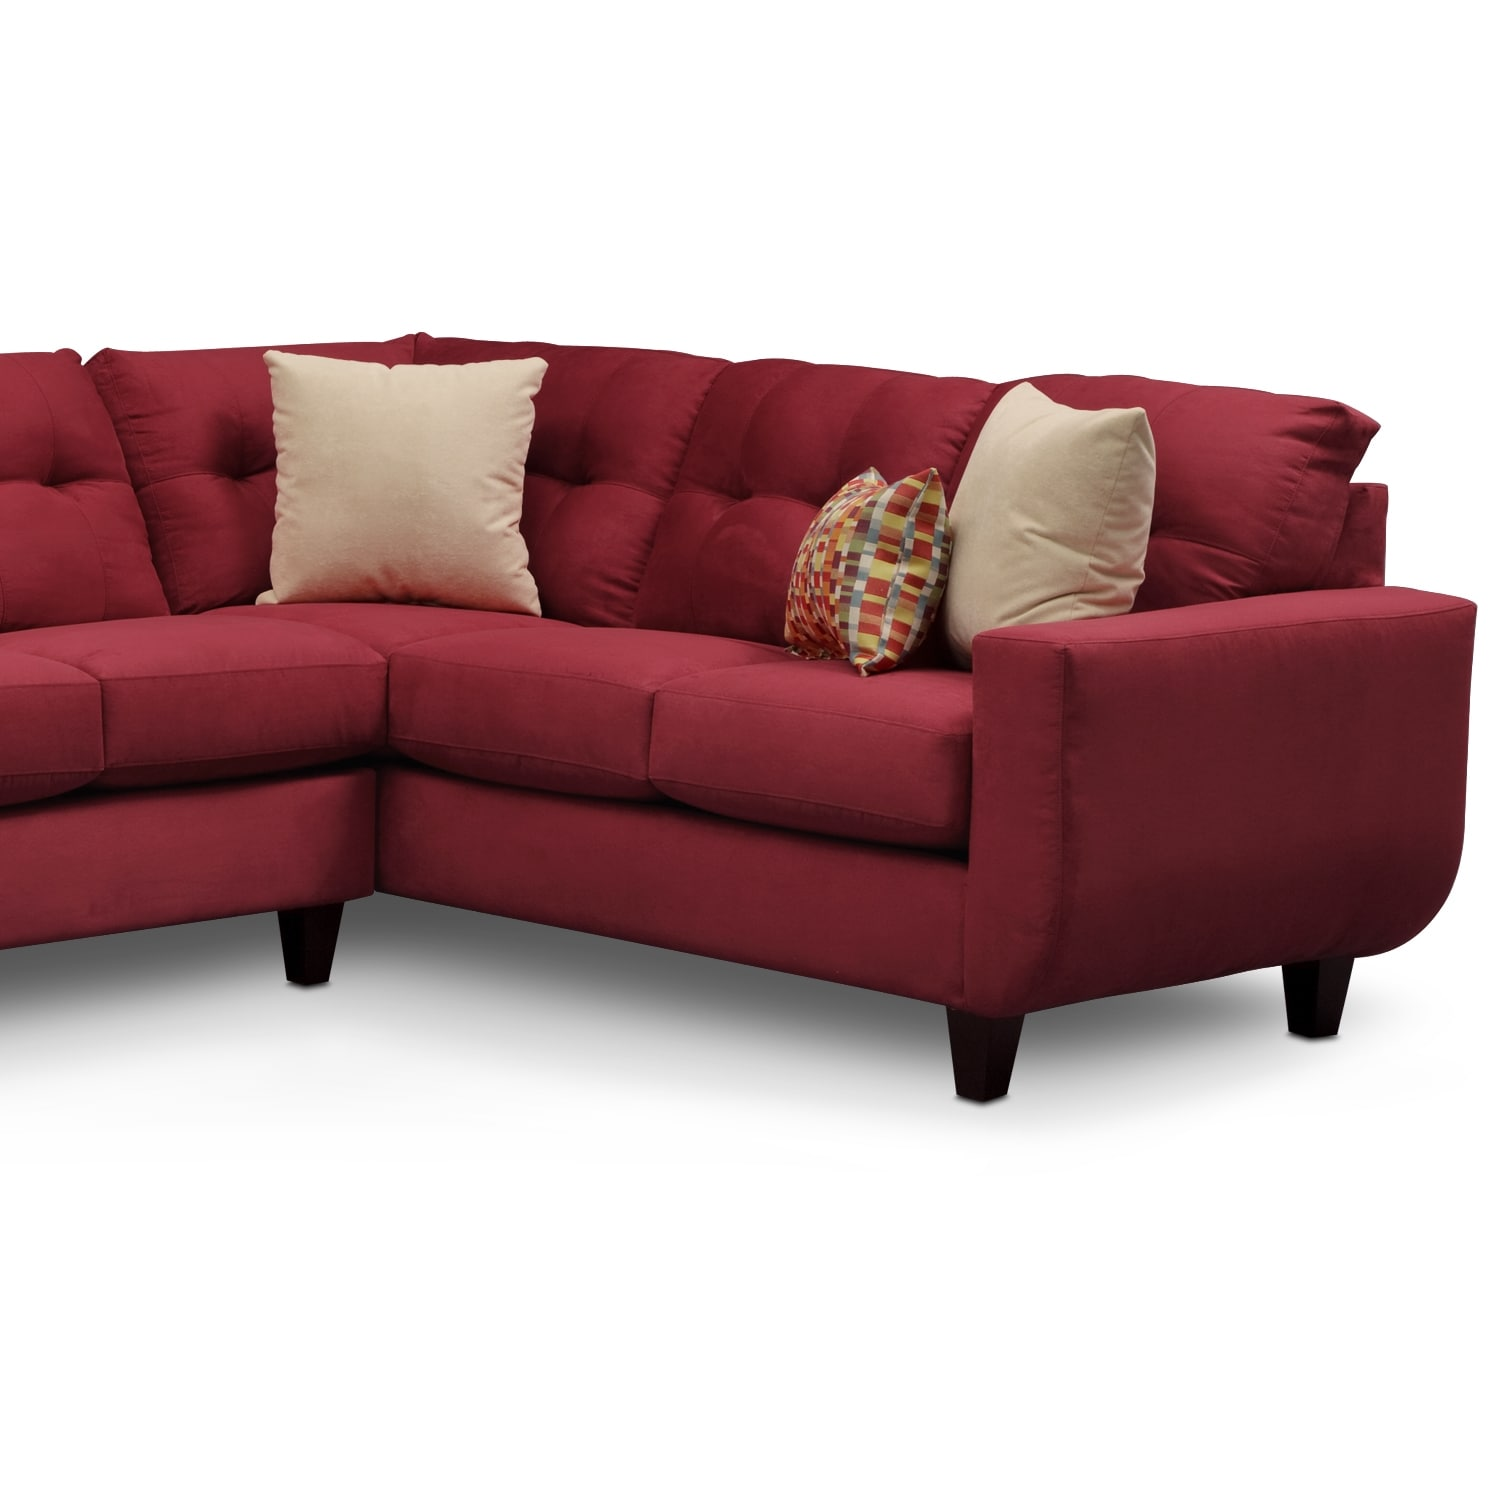 Walker ii red 2 pc sectional furniturecom for Uptown red 2 pc sectional sofa